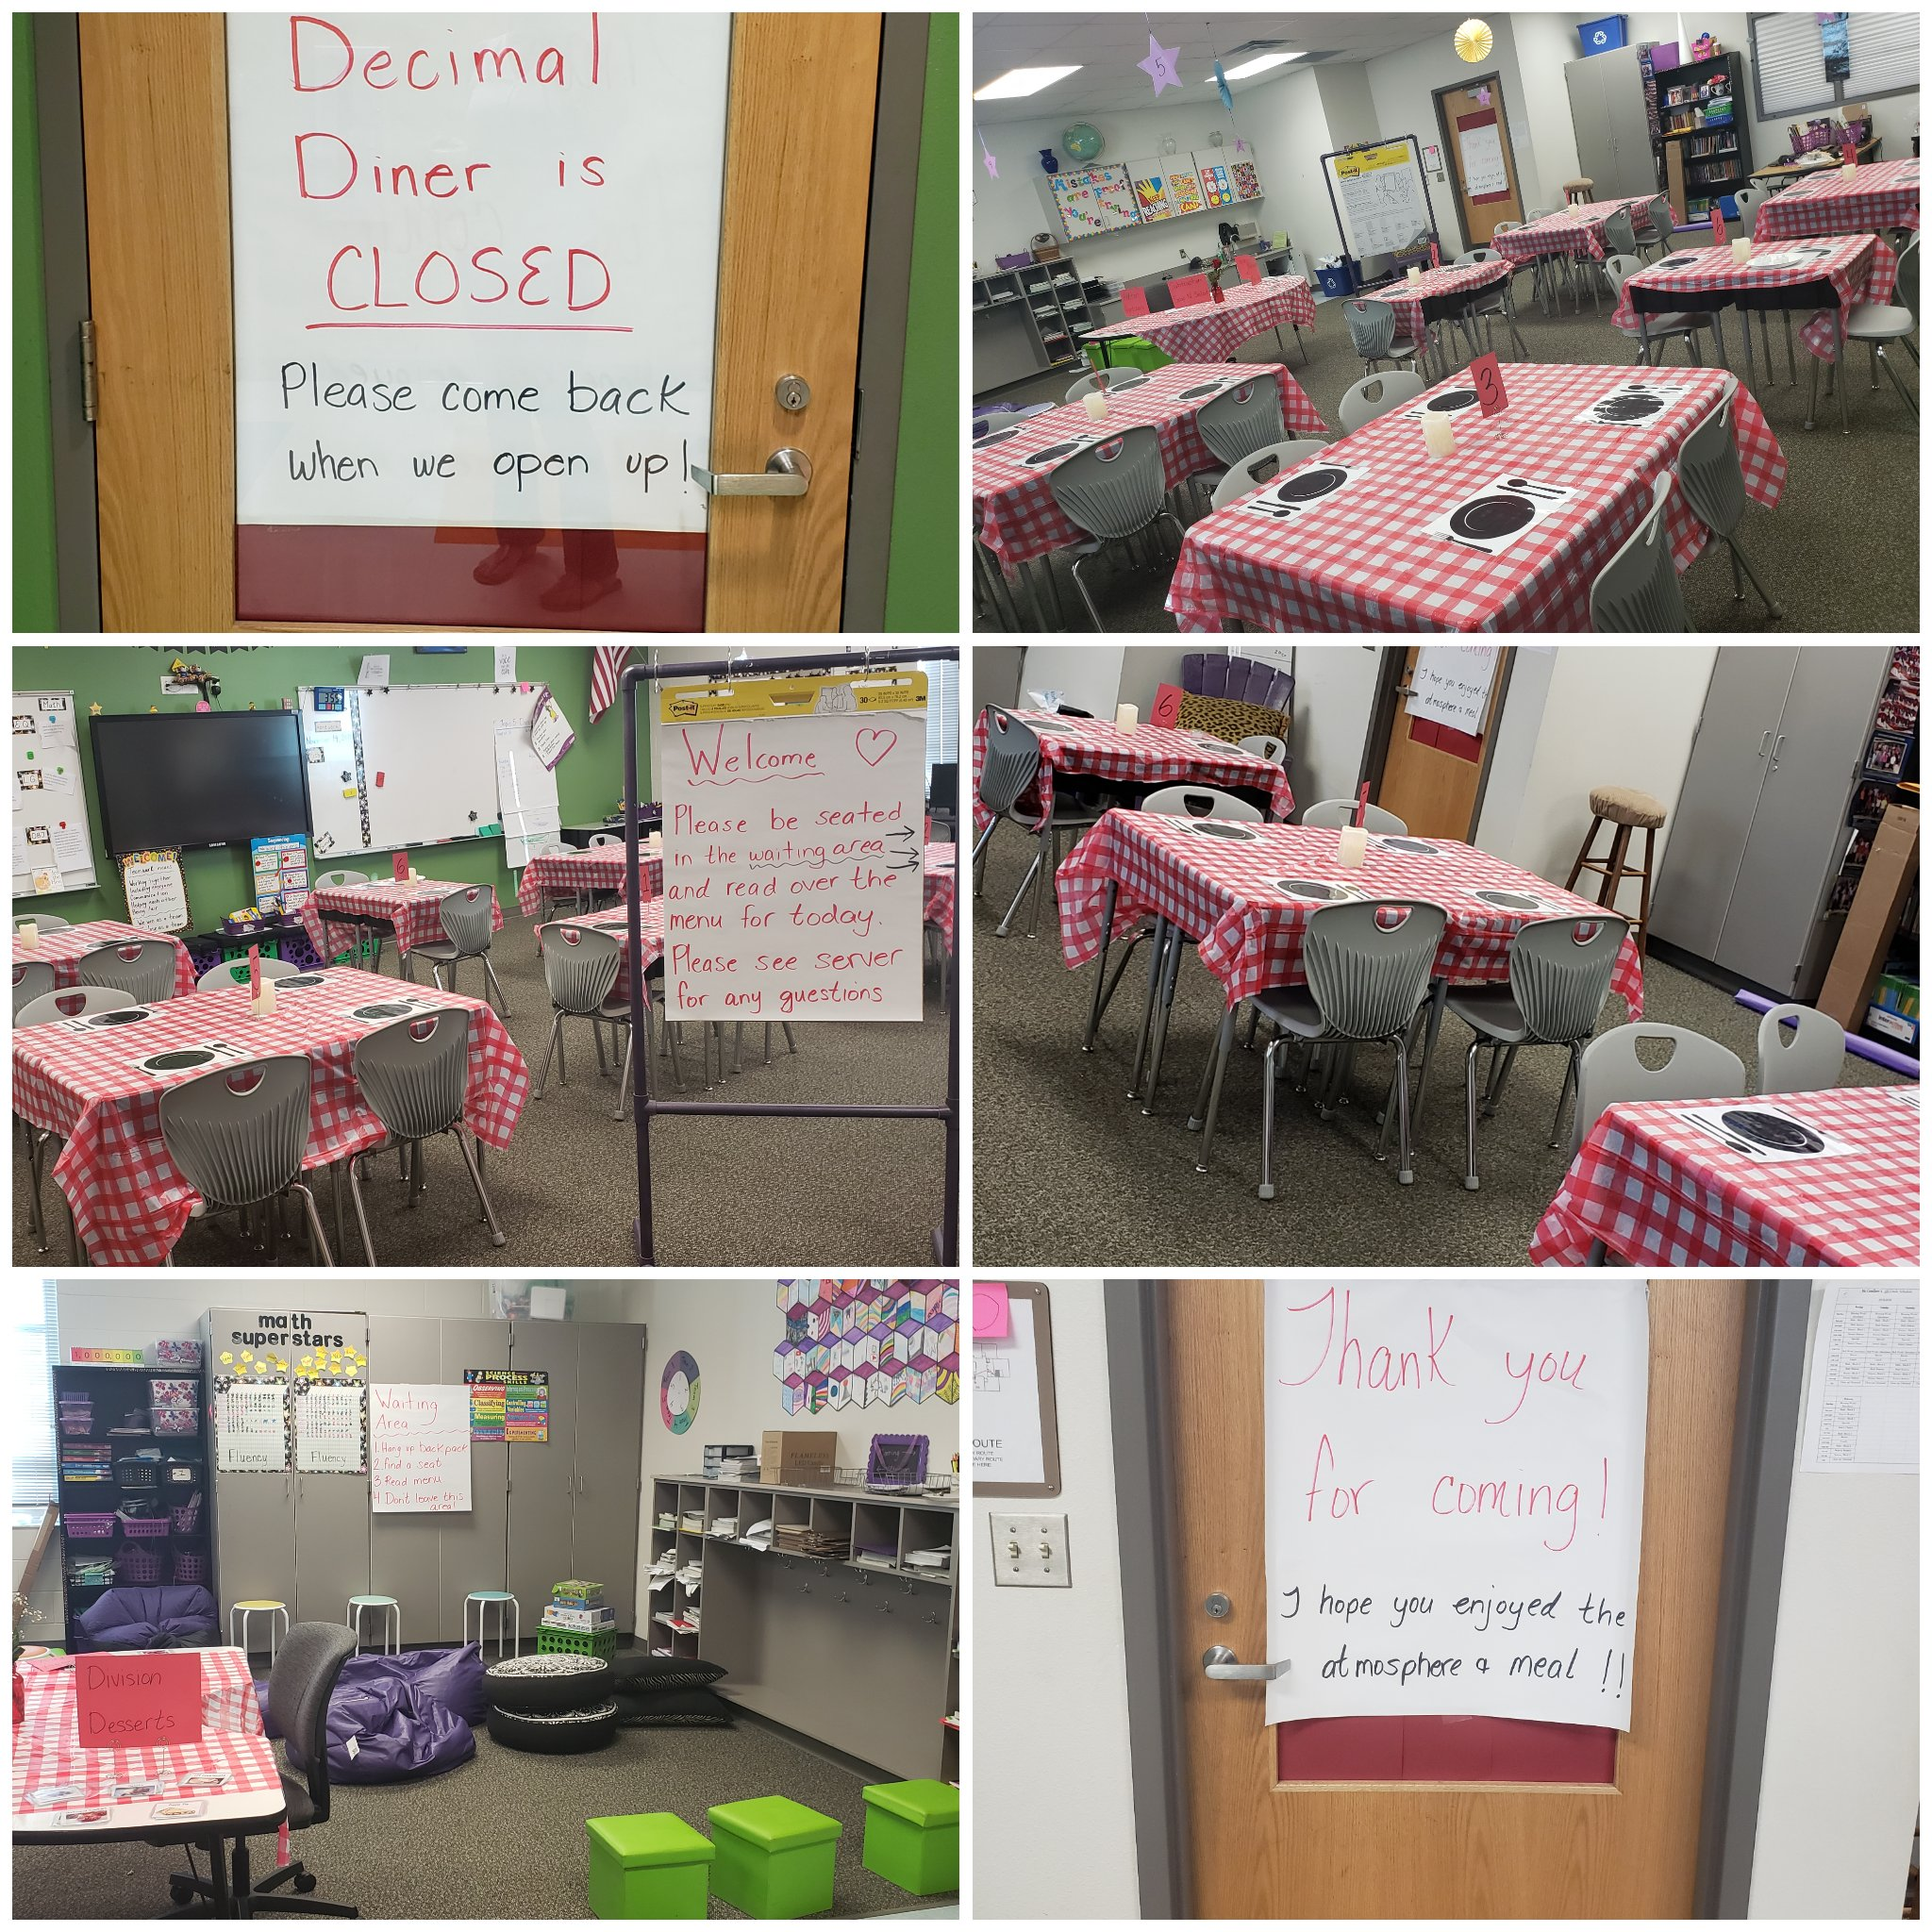 Ready for Decimal Diner! Can't wait for my customers tomorrow! #bethewildcard #iteachmath #lovemyjob https://t.co/172yC8ncgw